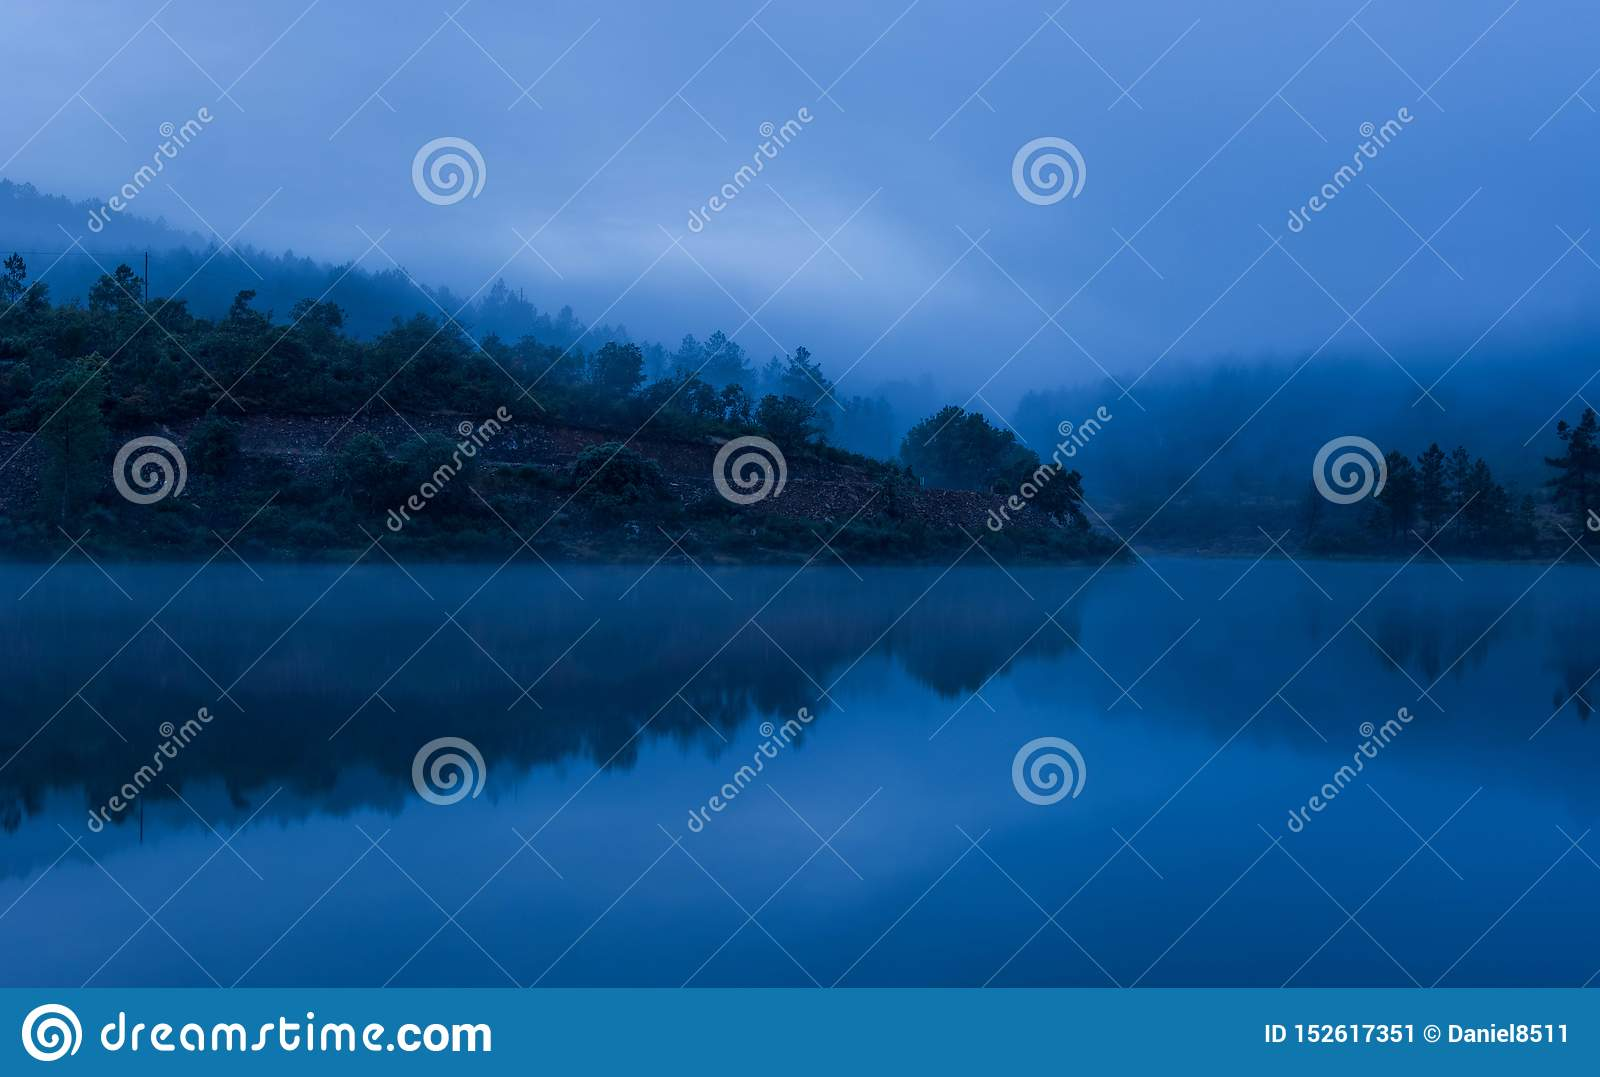 Misty lake with reflections and forest